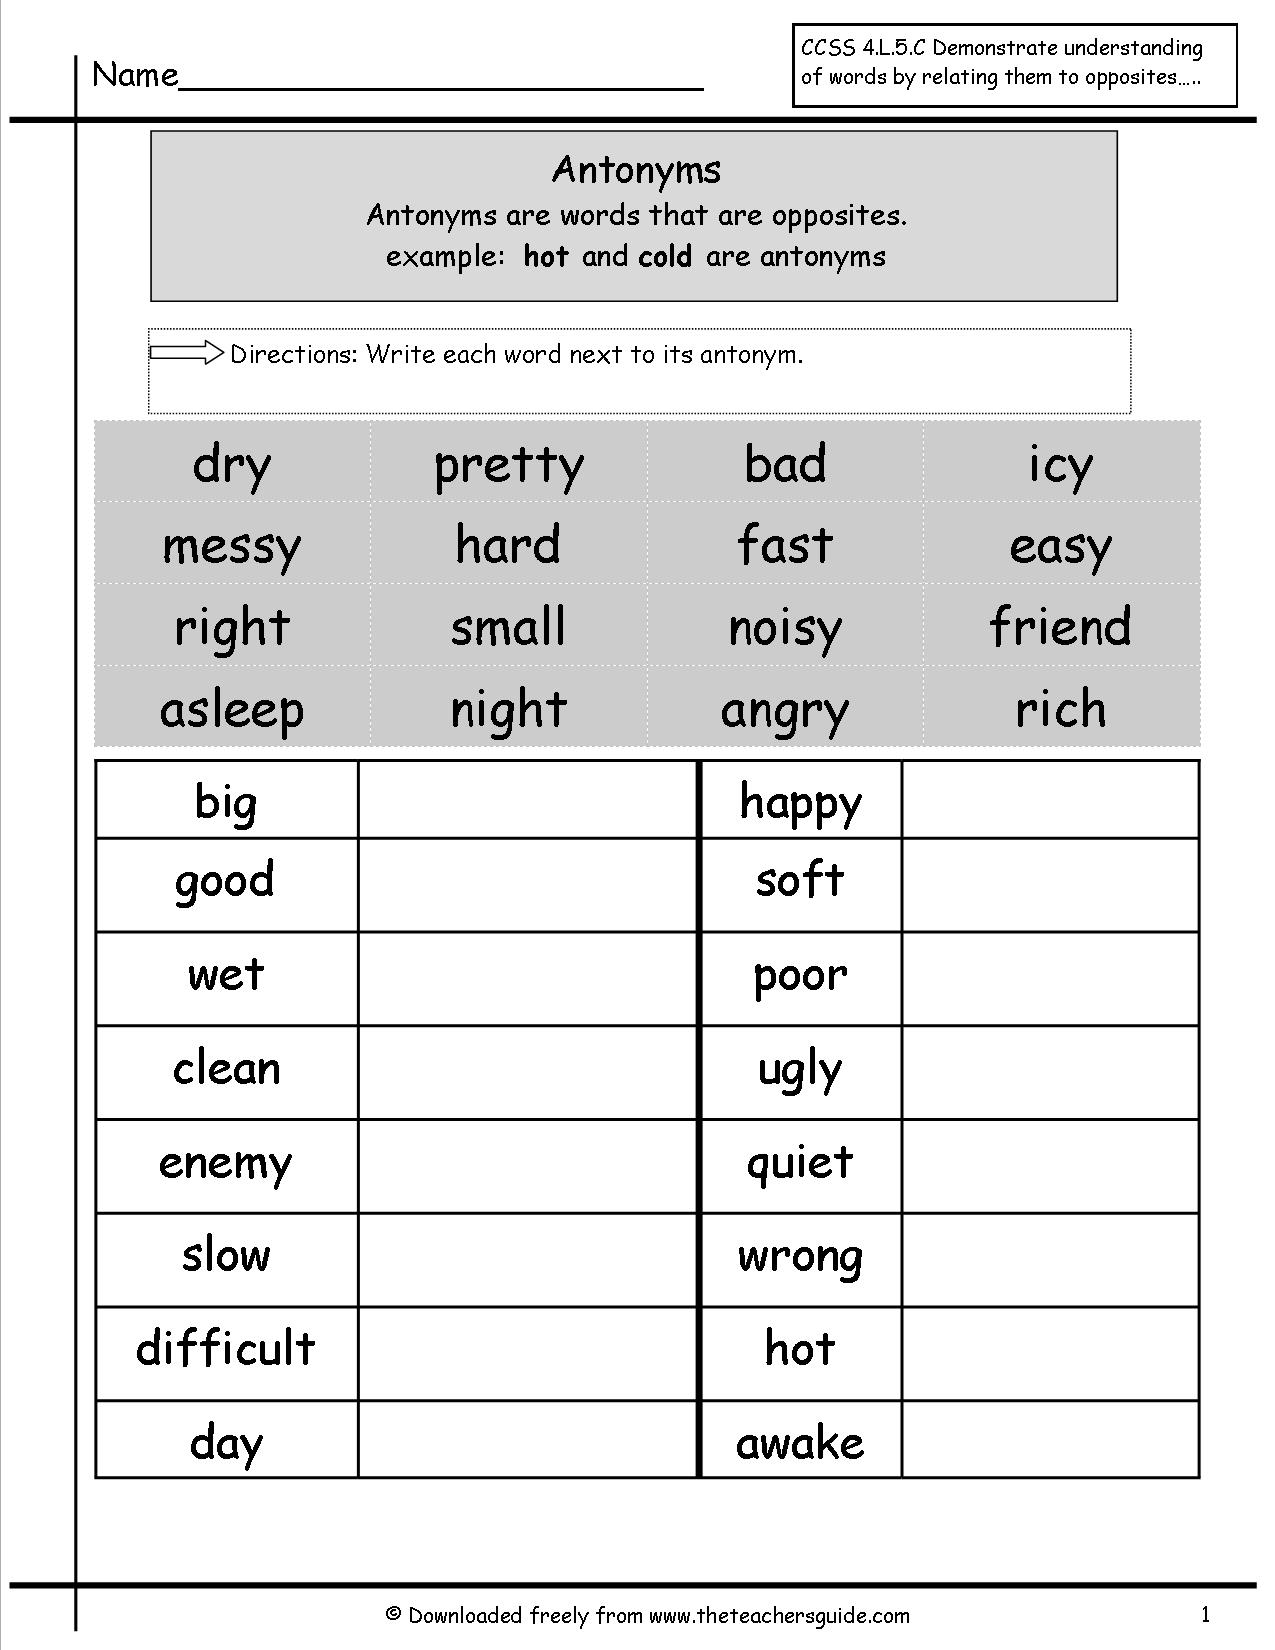 15 Best Images Of 5th Grade Prefixes And Suffixes